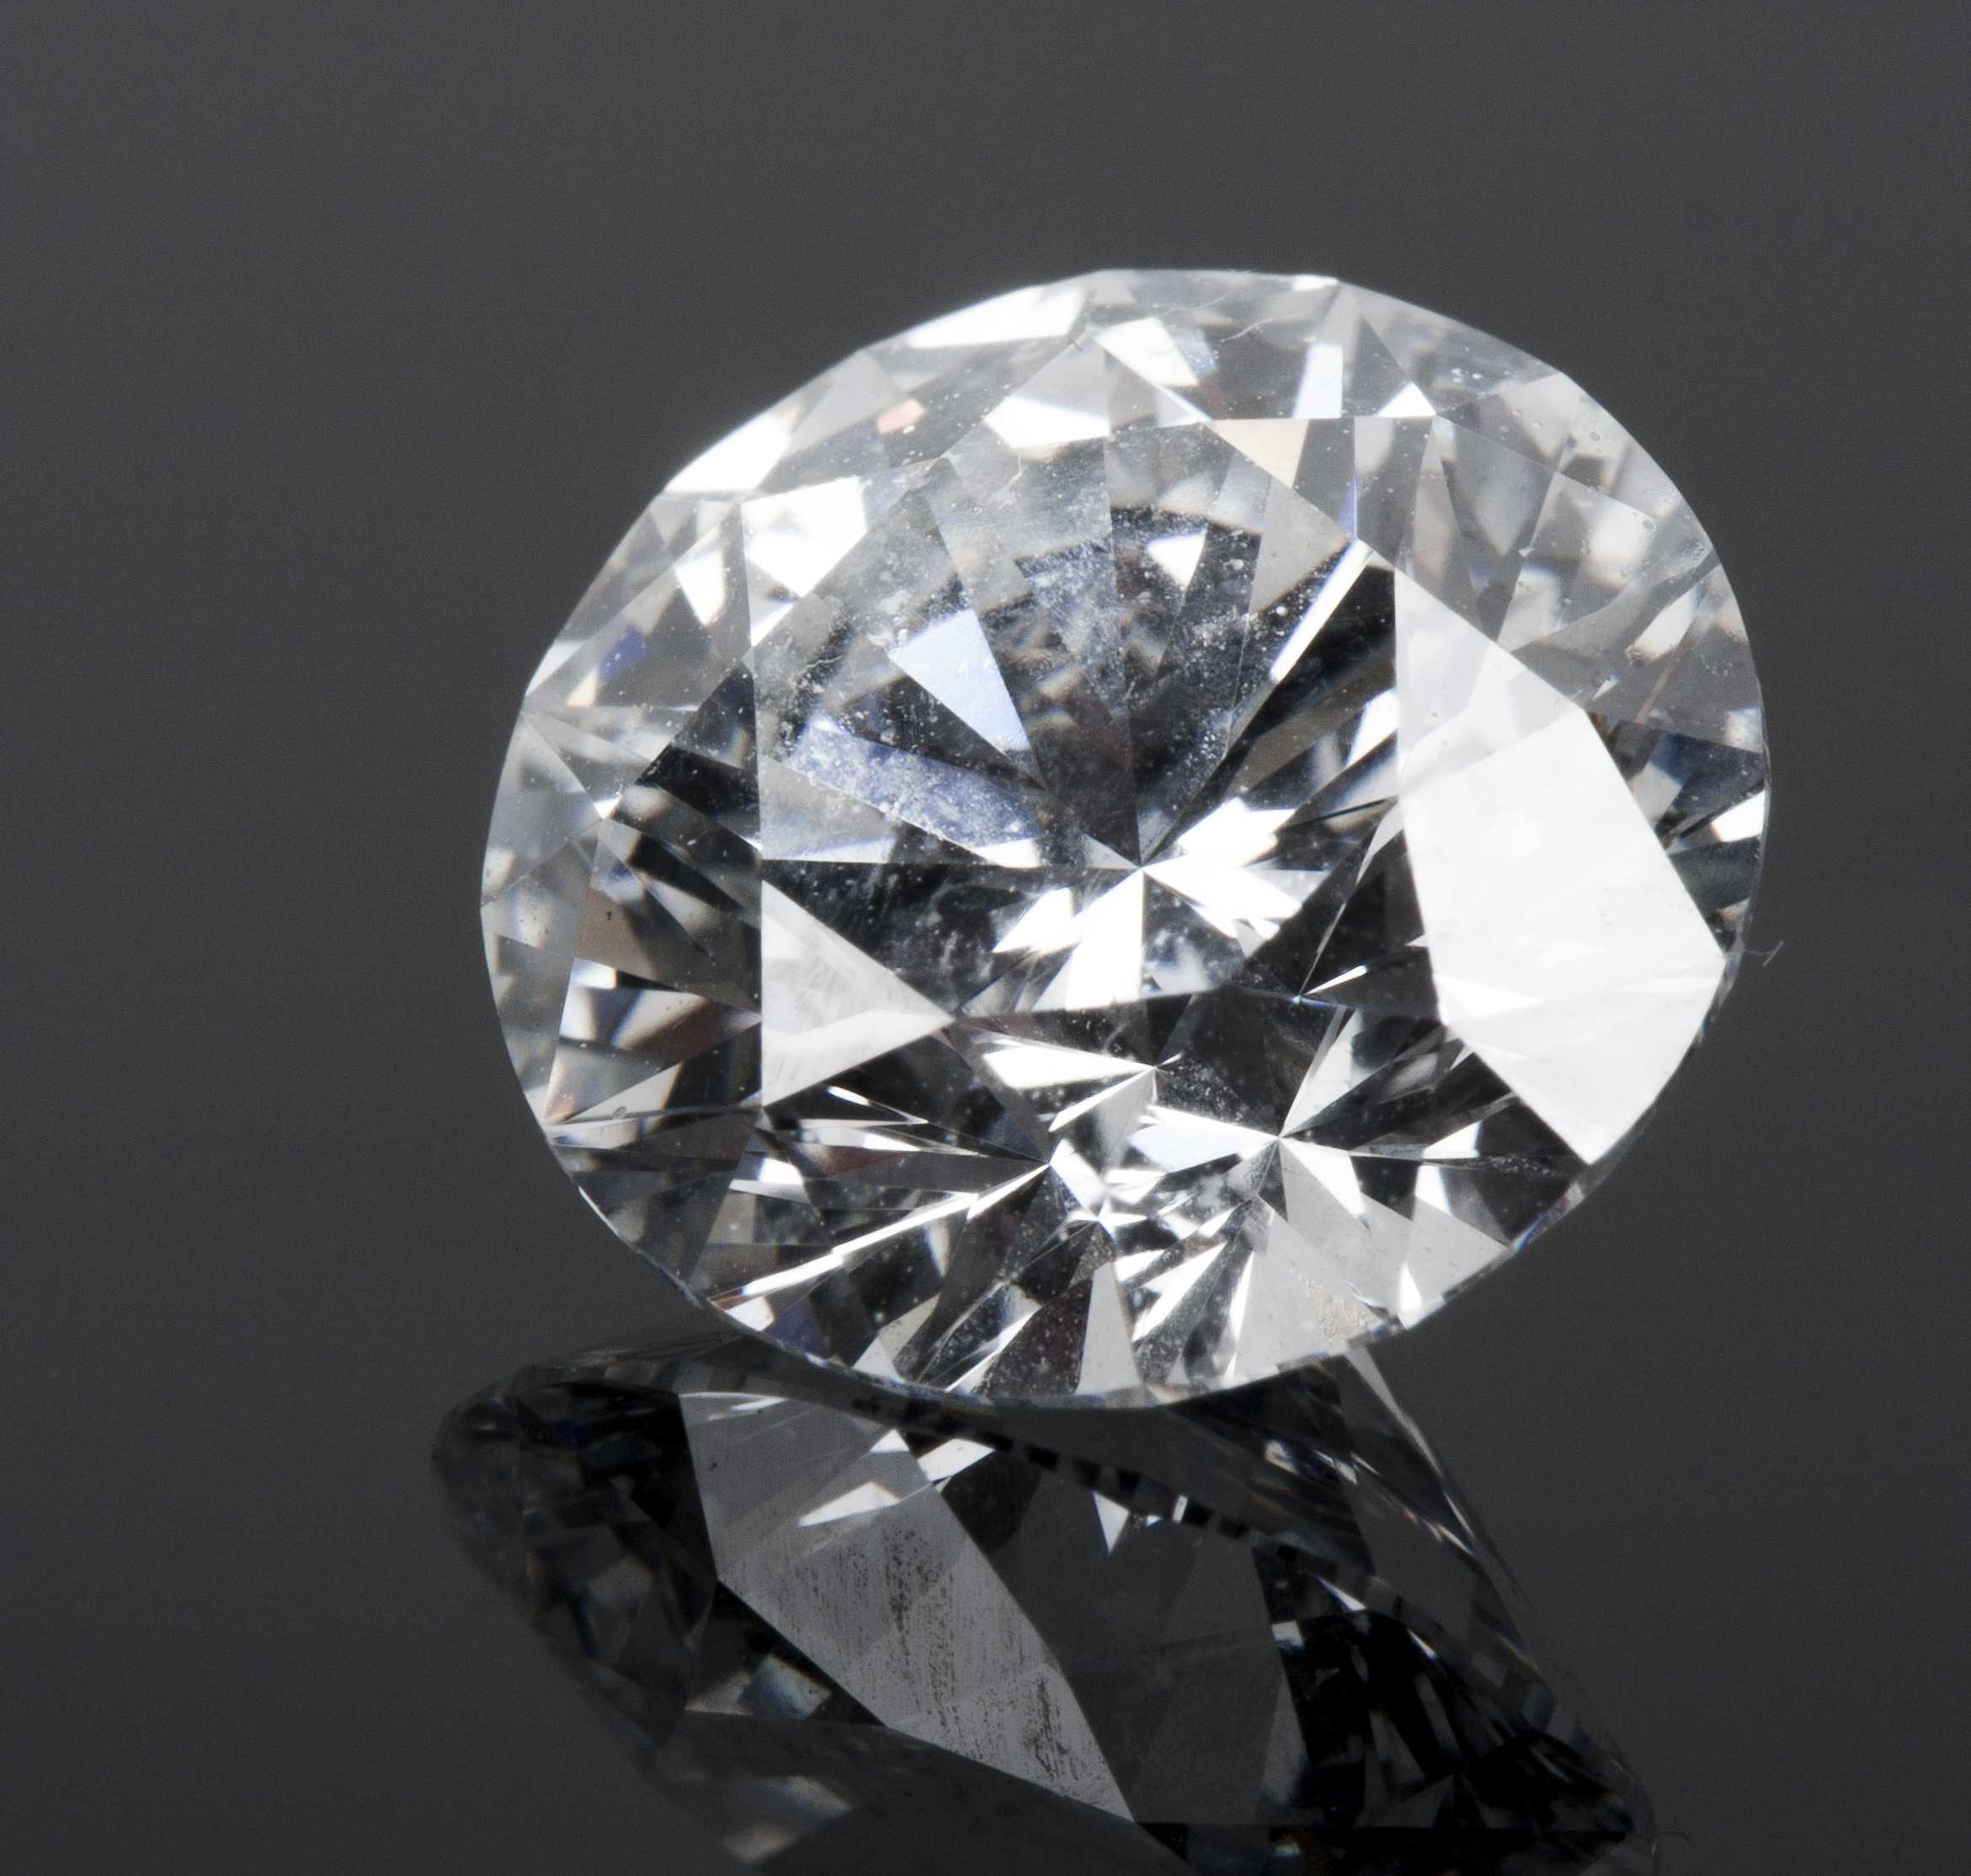 carats asp cut uk auction unmounted vintage brilliant weighing diamond brilliantcut